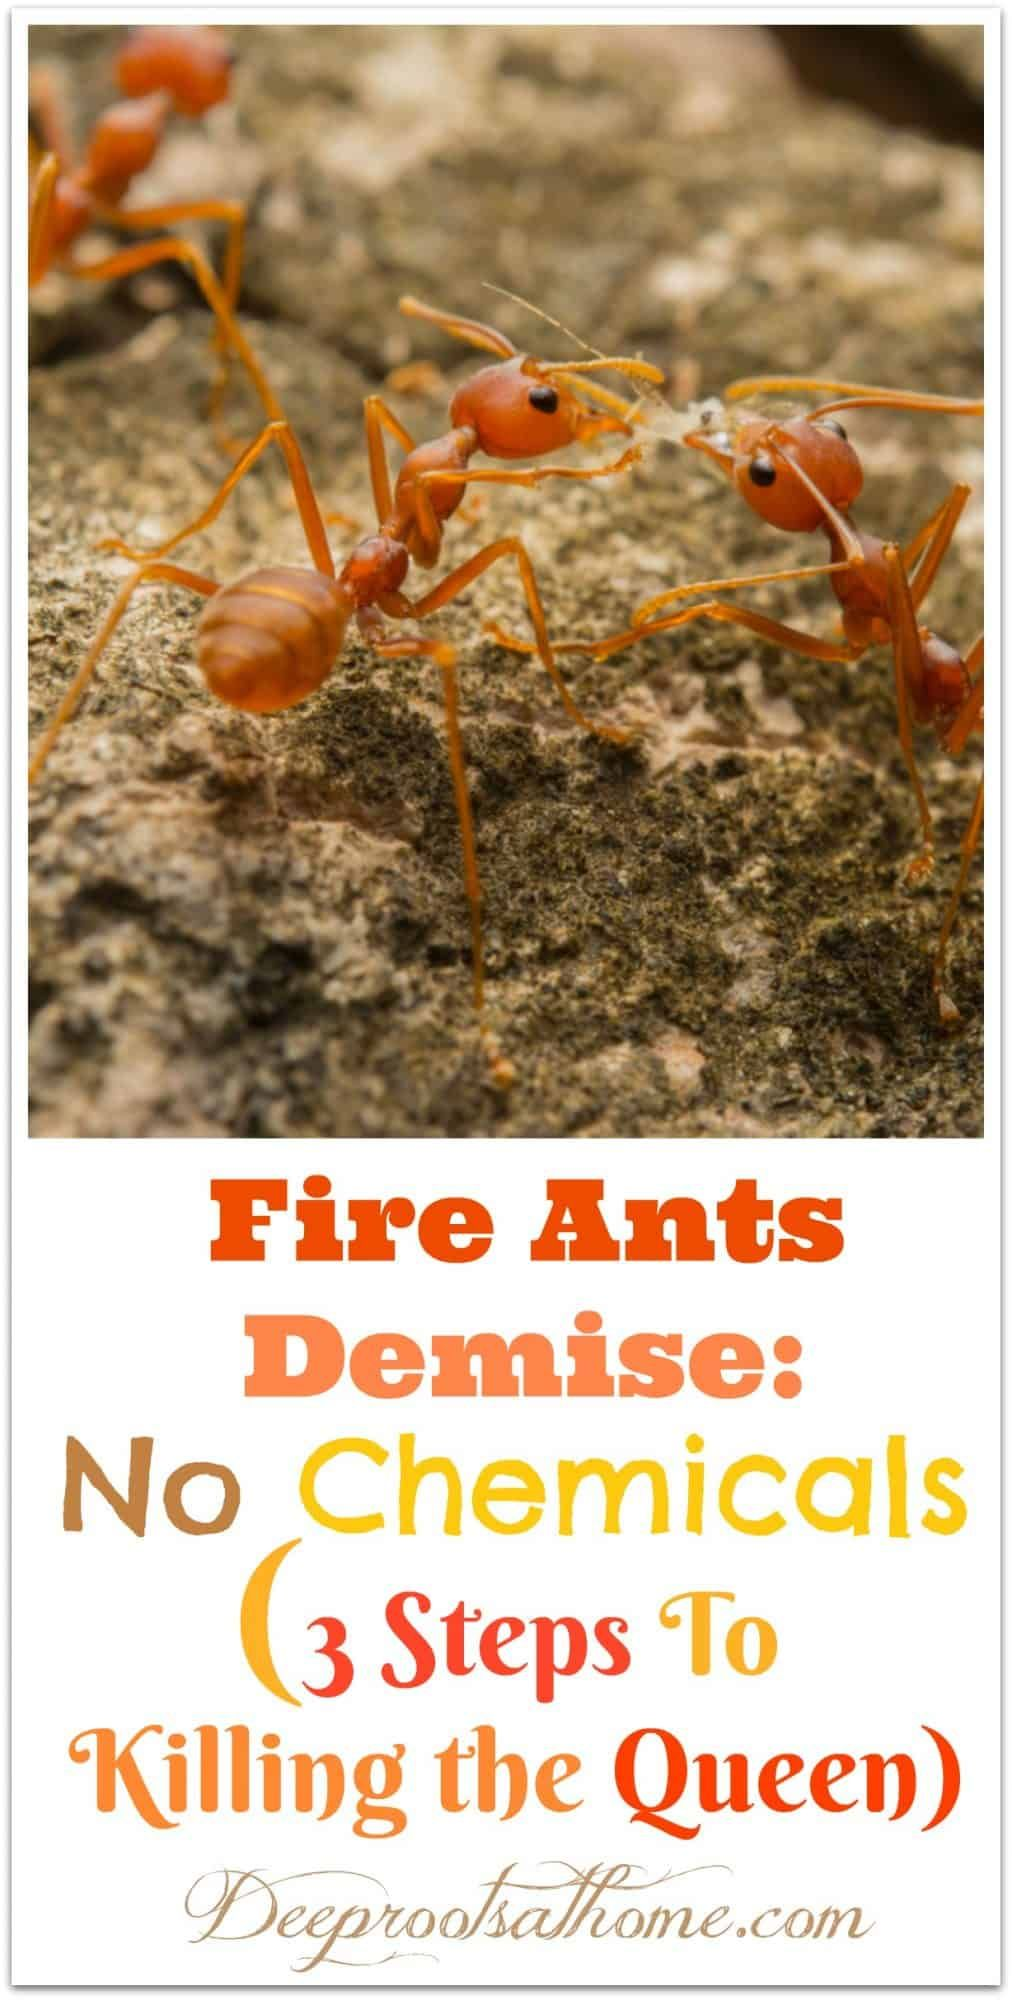 Fire Ants Kill the Queen If You Do These 3 Steps Fire